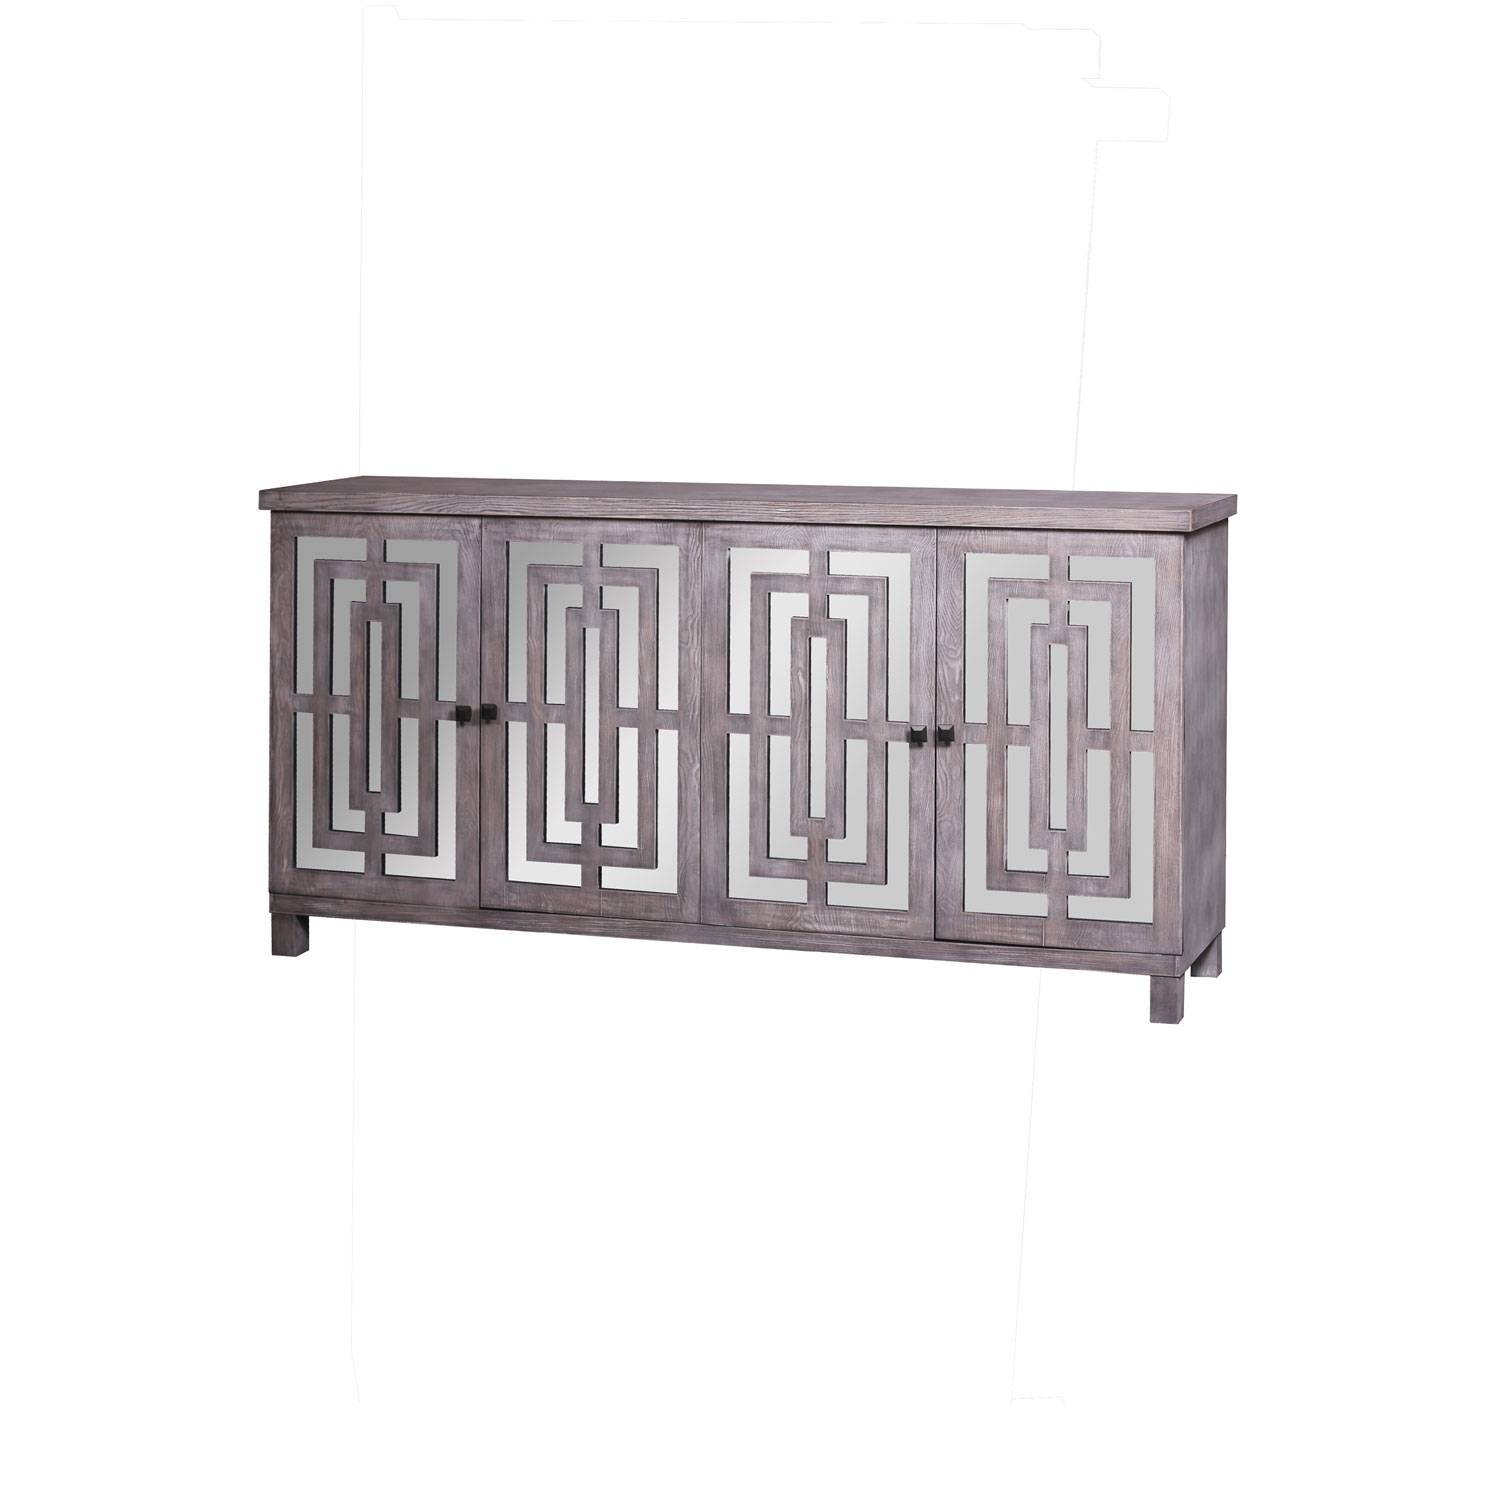 Abbott Gray Sideboard Harp & Finial Sideboards Buffets pertaining to 14 Inch Deep Sideboards (Image 2 of 15)